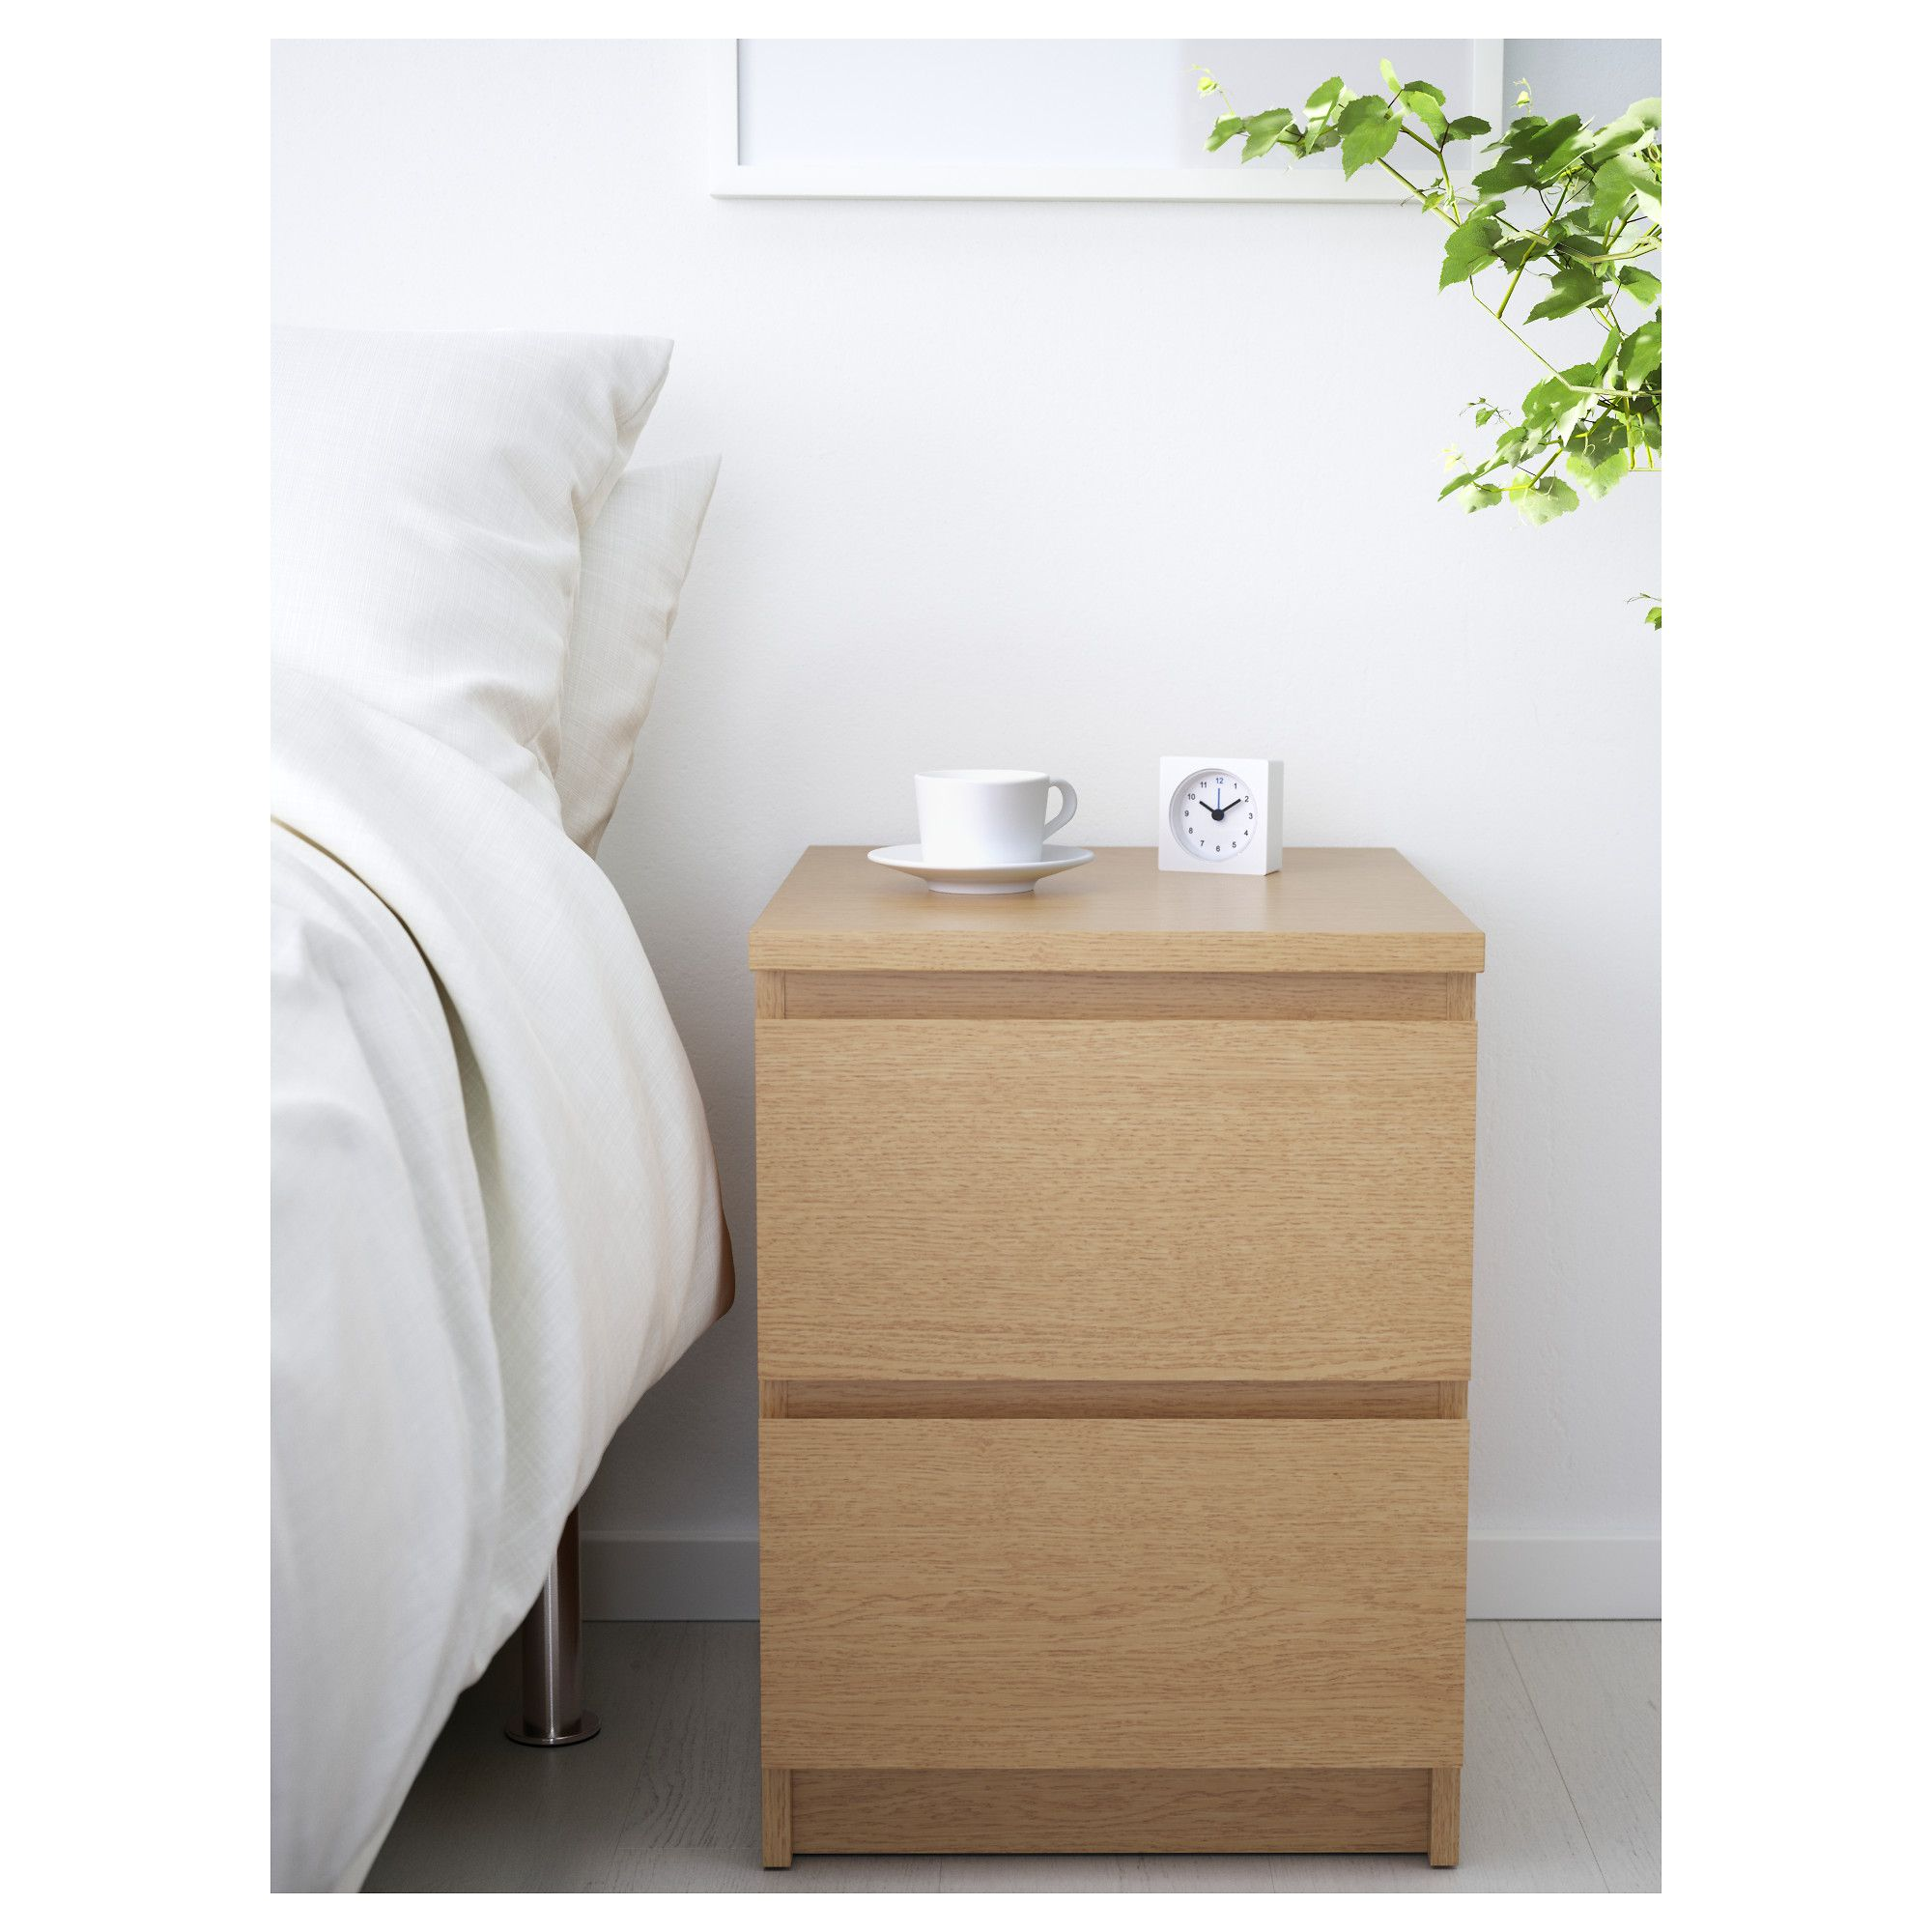 Ikea bedroom furniture chest of drawers - Malm Chest Of 2 Drawers Oak Veneer 40x55 Cm